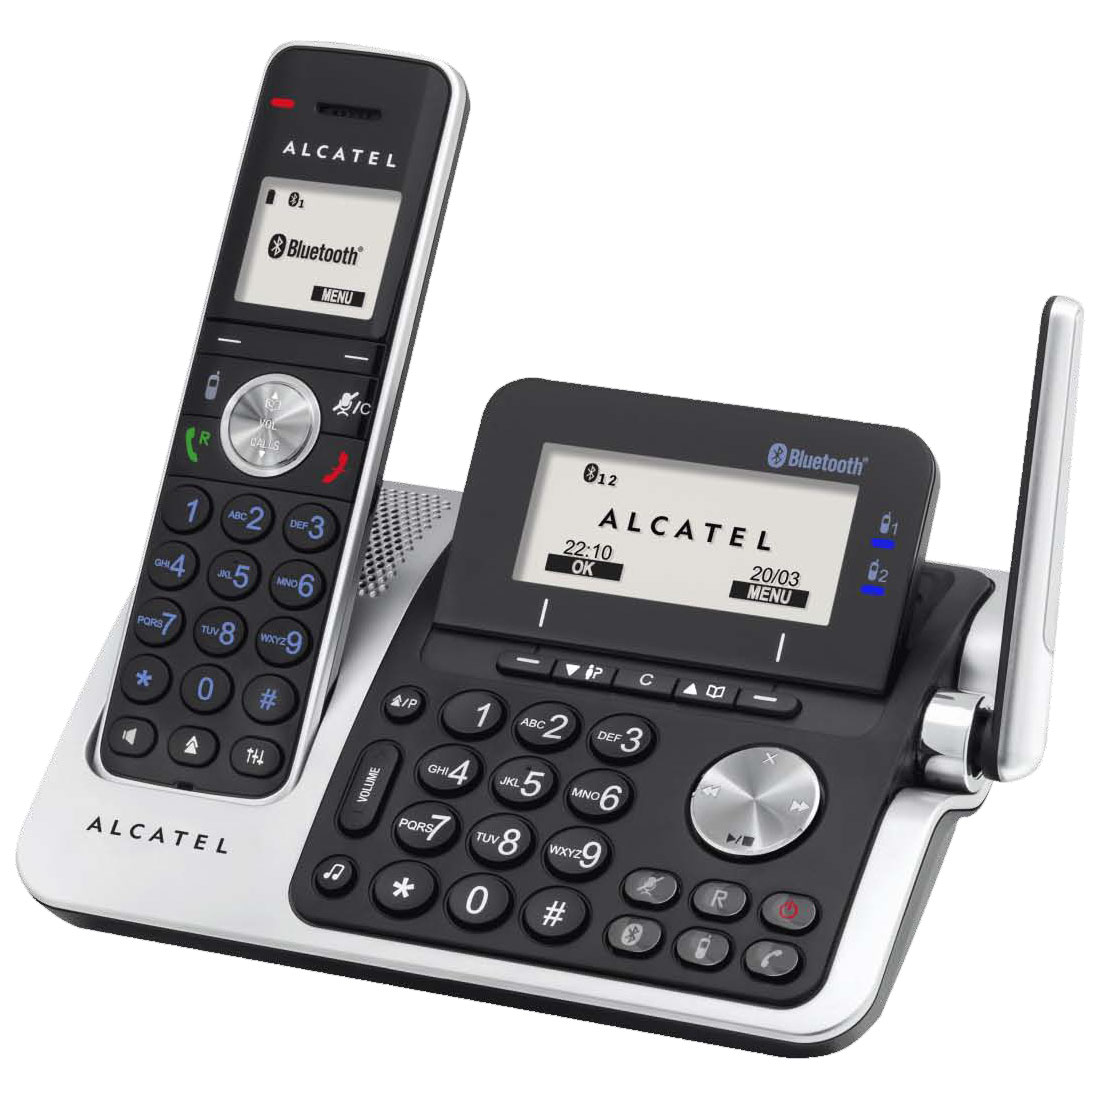 alcatel xp2050 t l phone sans fil alcatel sur ldlc. Black Bedroom Furniture Sets. Home Design Ideas